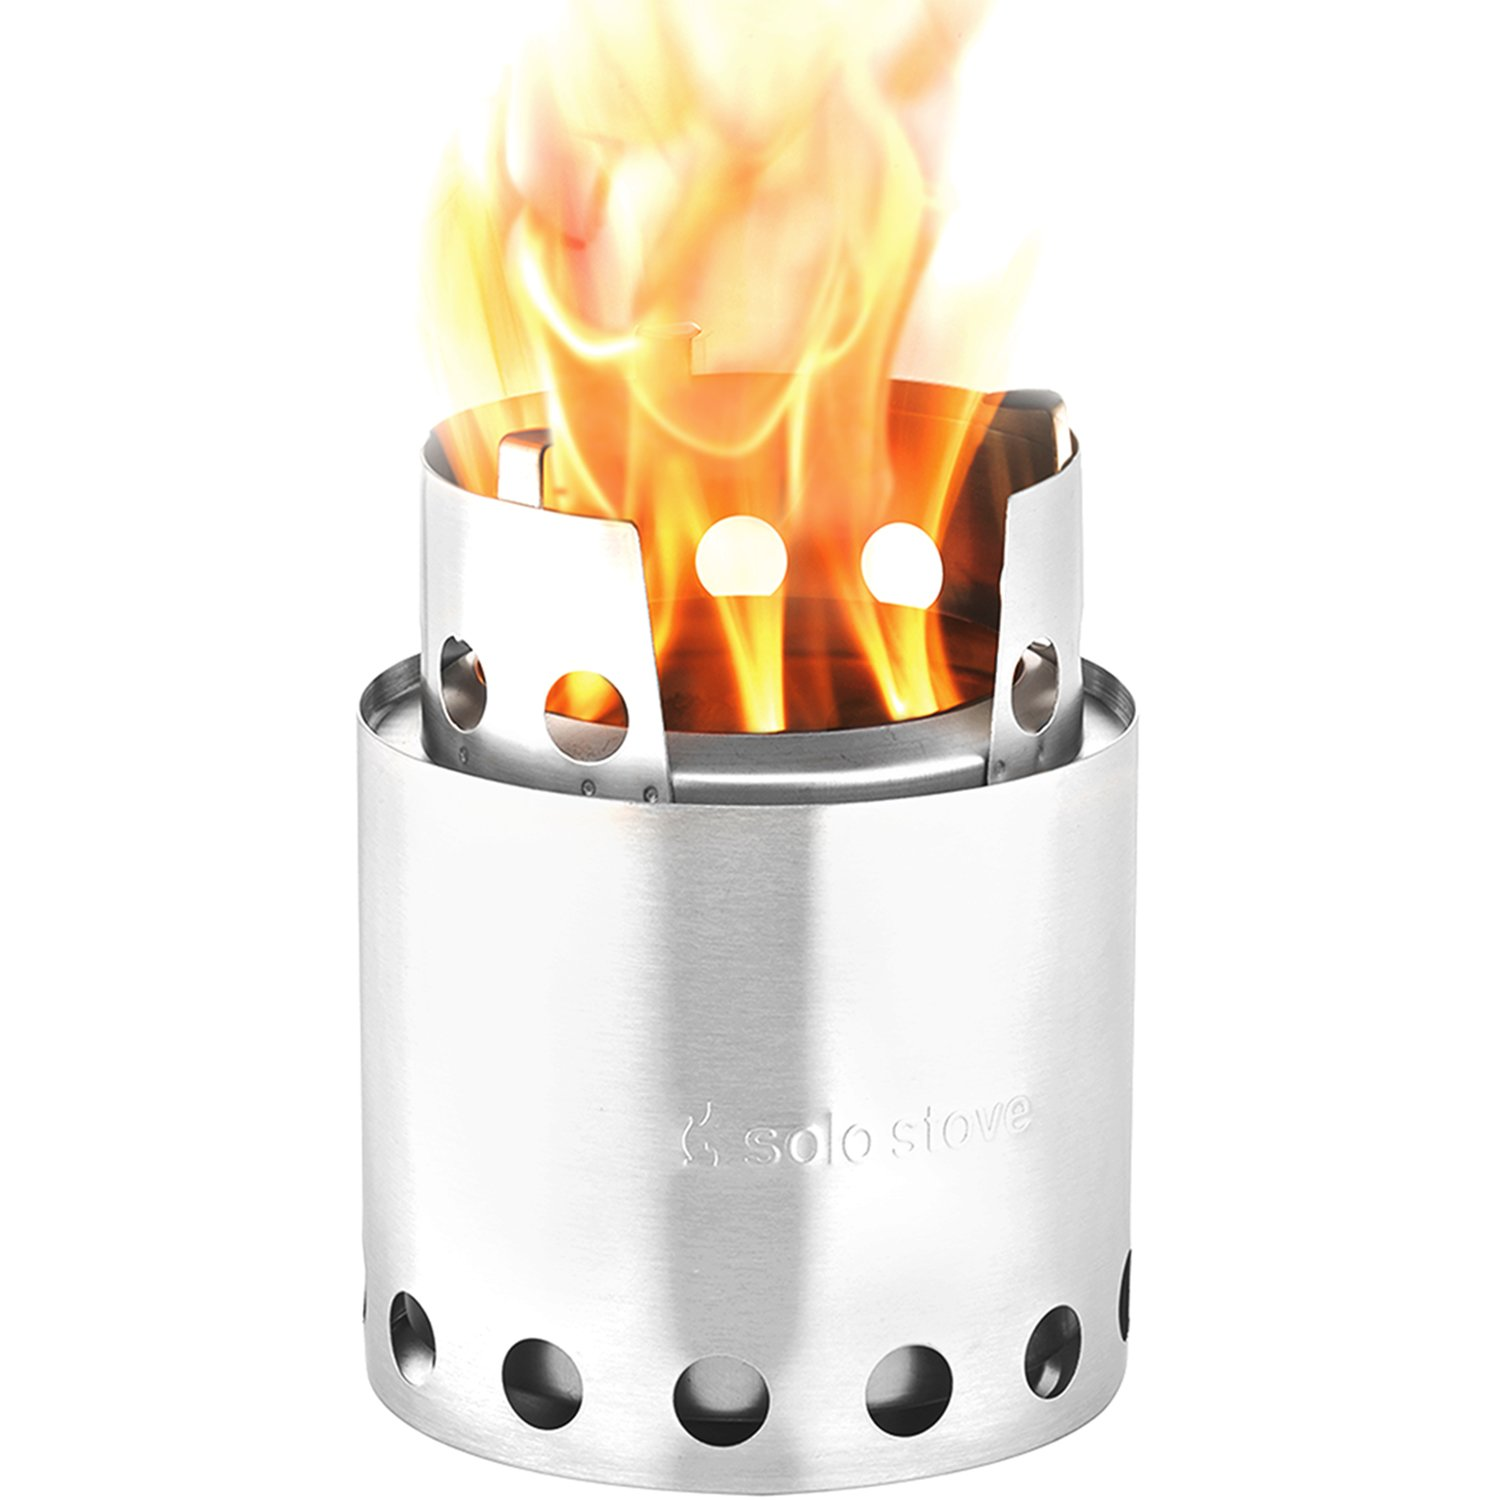 Solo Stove Lite – Portable Camping Hiking and Survival Stove Powerful Efficient Wood Burning and Low Smoke Gassification Rocket Stove for Quick Boil Compact 4.2 Inches and Lightweight 9 Ounces